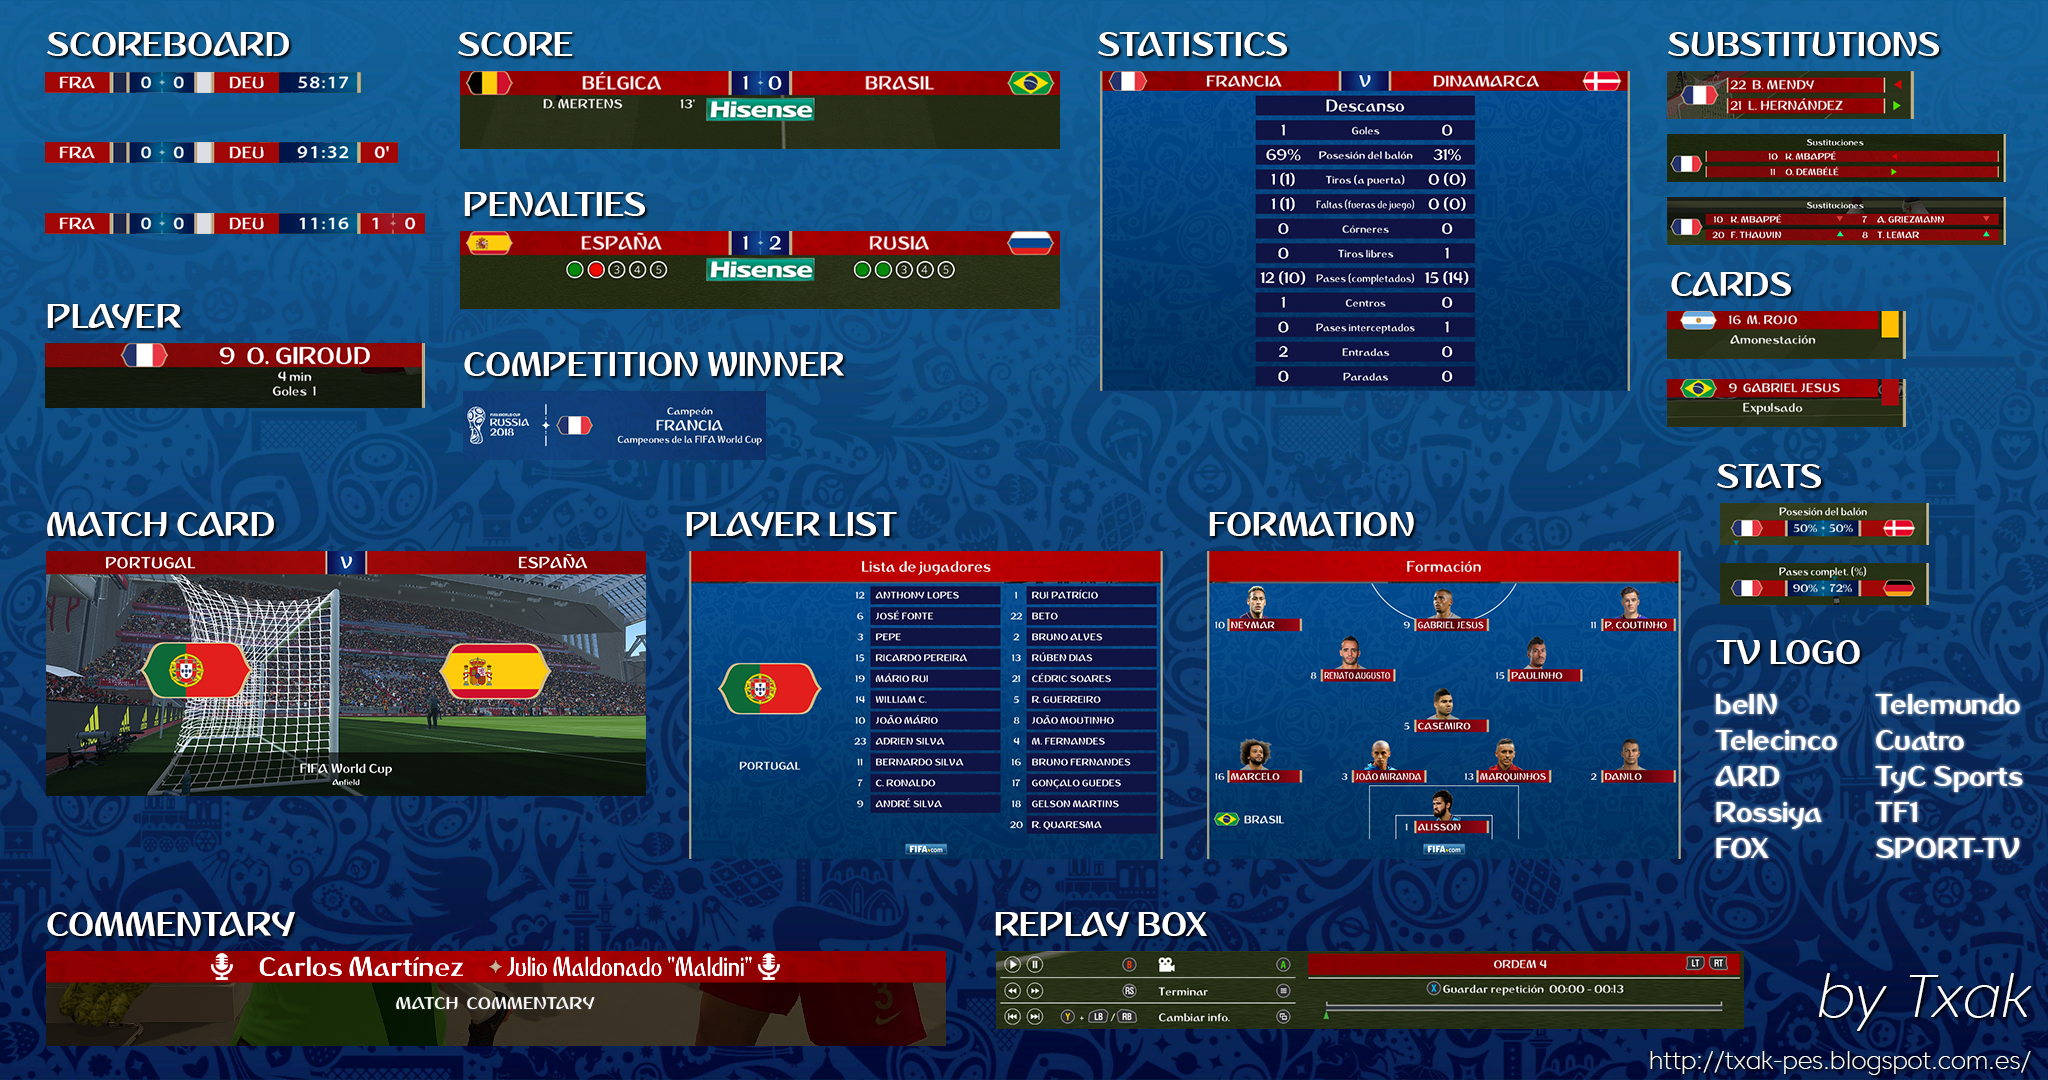 FIFA World Cup 2018 Scoreboard V2 by Txak